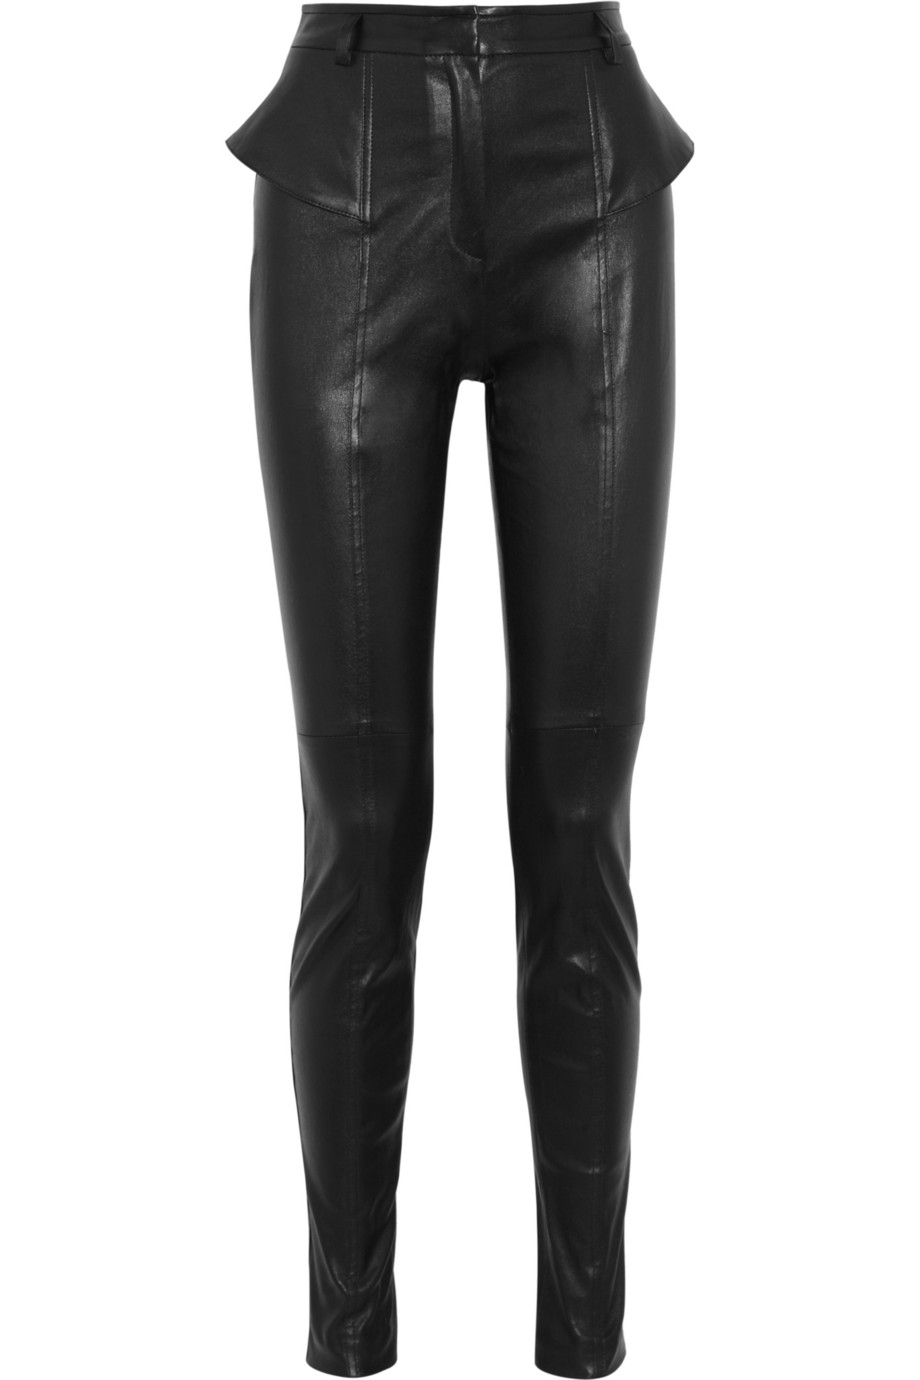 Womens Black High Waisted Skinny Jeans